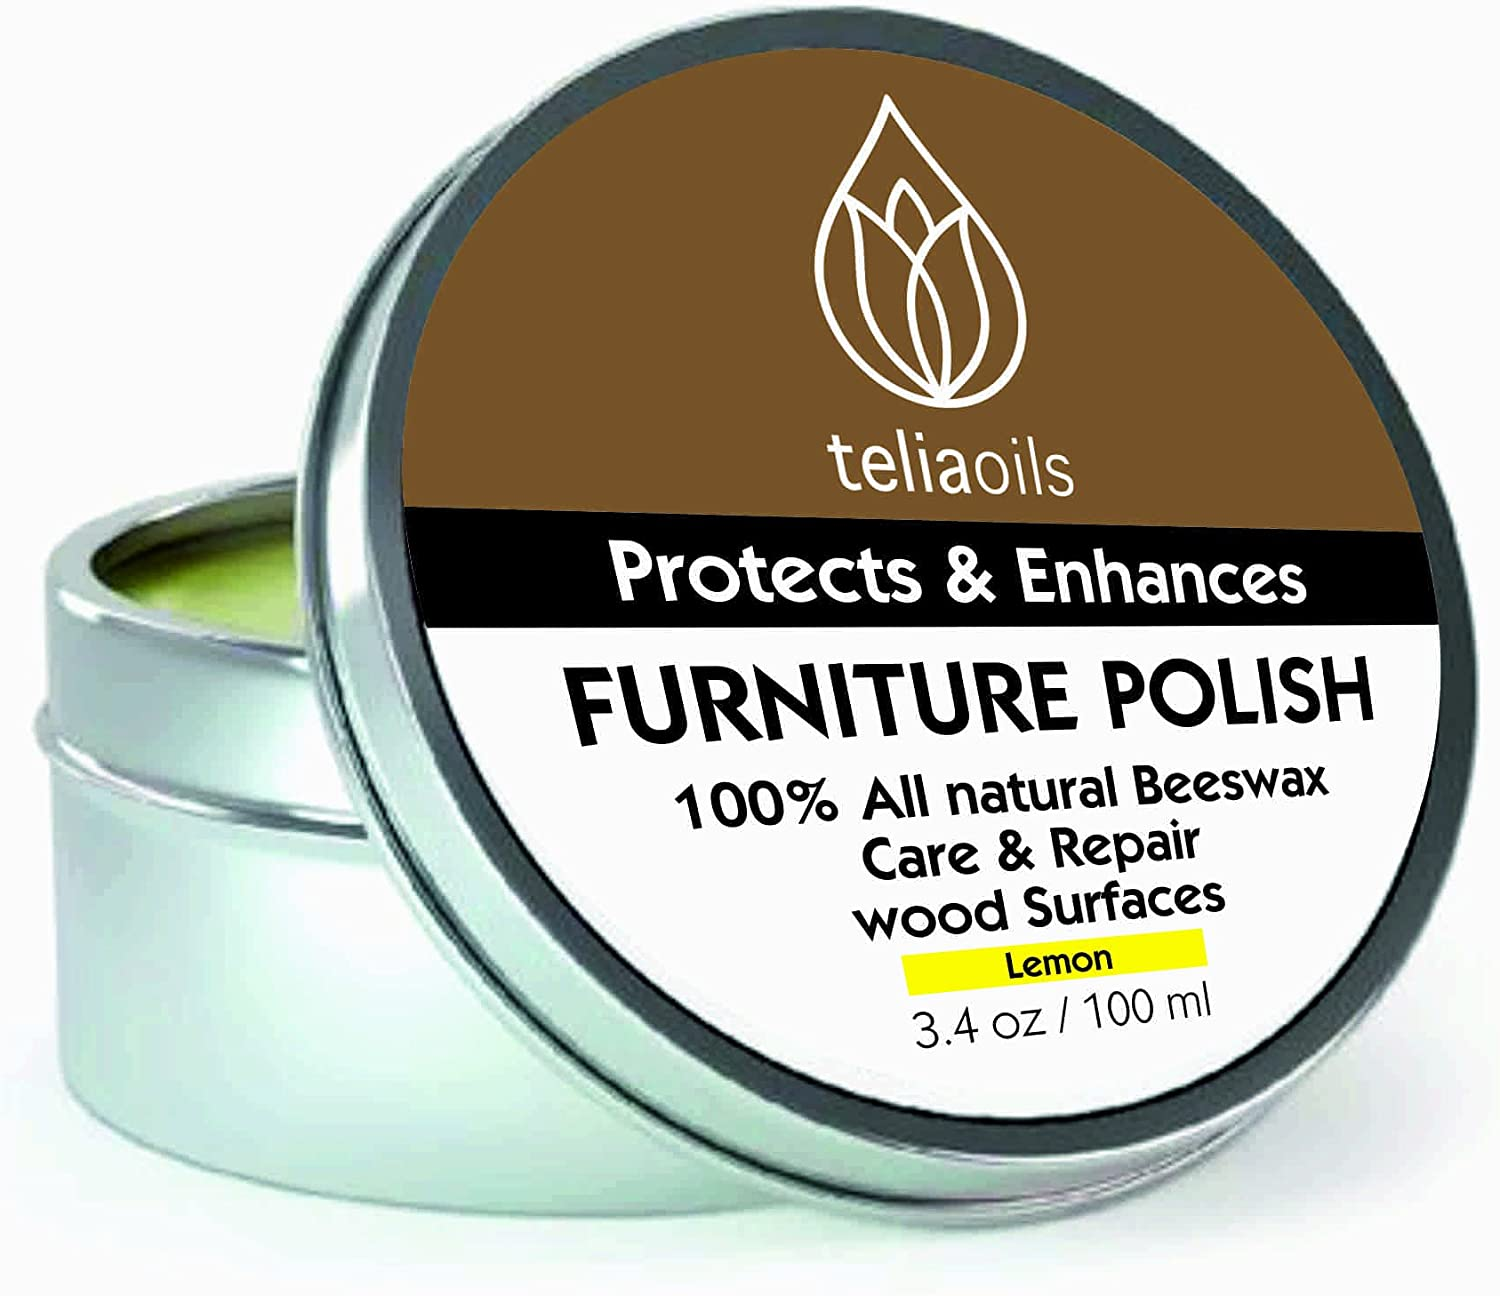 Beeswax Furniture Polish with Lemon ess oil, 100% natural, for any kind of wood, nourishing, renewing, sealing, covering scratches, protecting from drying out, restoring wood's natural beauty. (Scent)